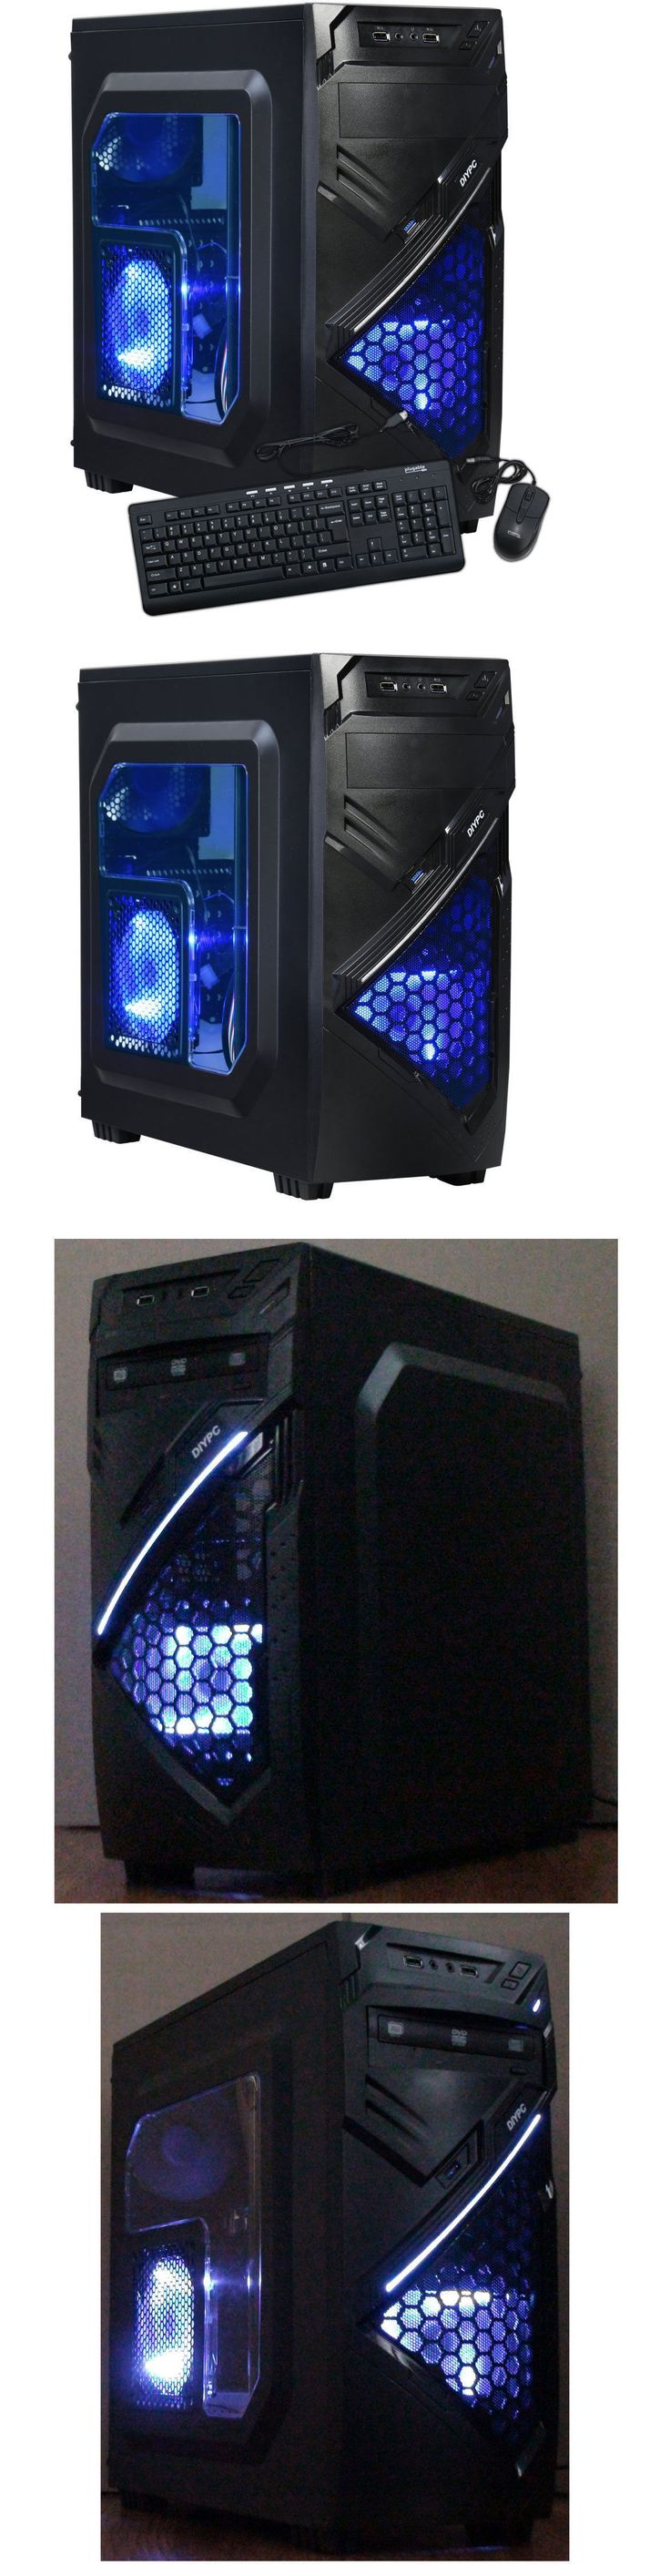 Computers Tablets Networking: Custom Amd 4.0Ghz Gaming Computer Desktop Pc System 2Tb 16Gb 1Tb 8Gb Hdmi New BUY IT NOW ONLY: $409.98